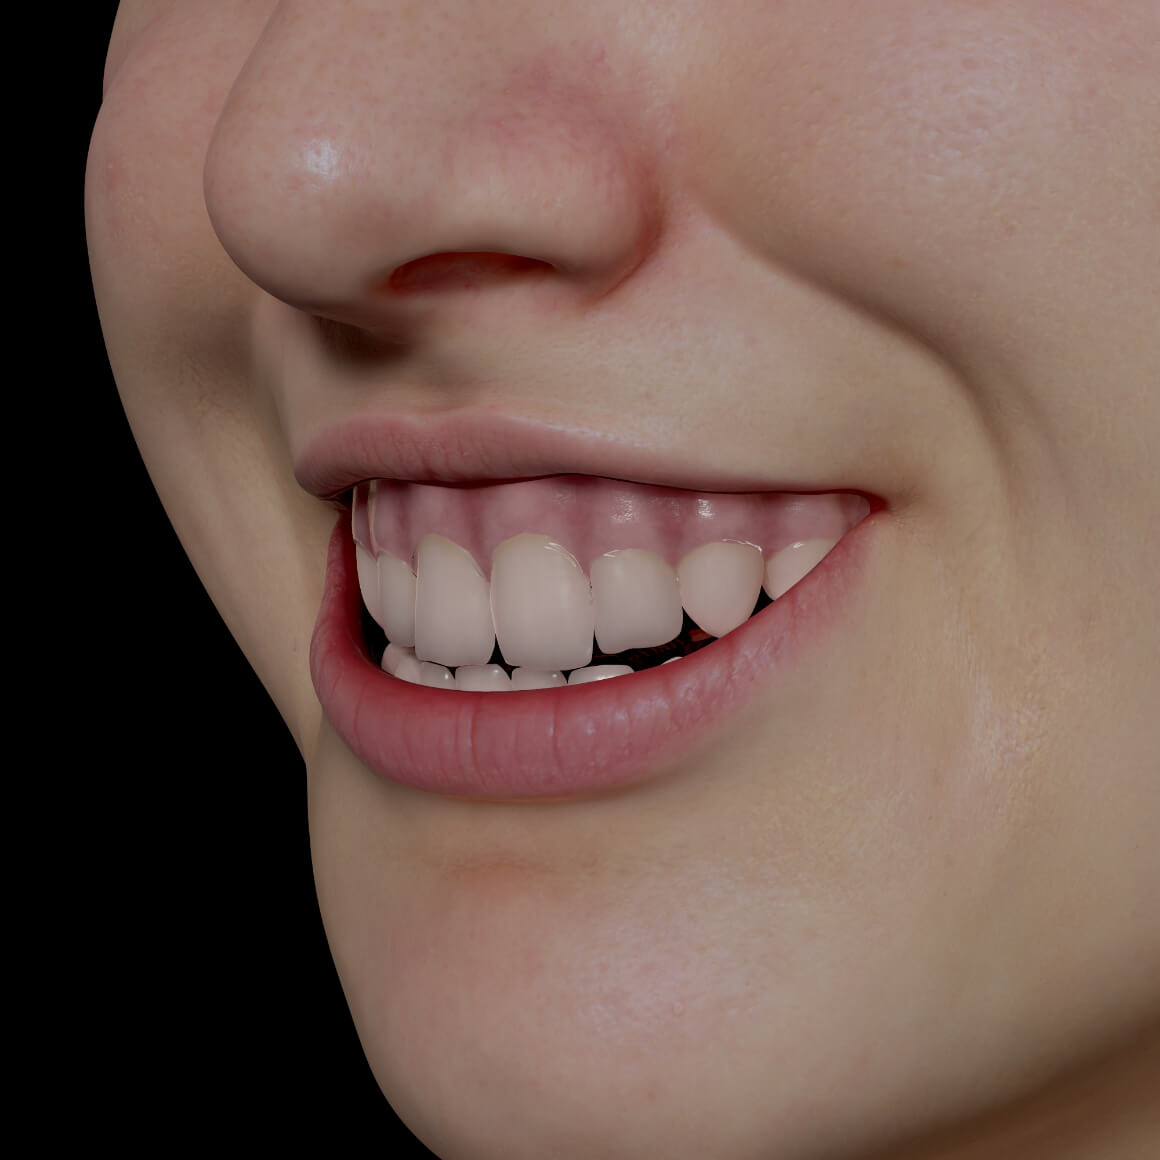 Gummy smile of a female patient from Clinique Chloé positioned at an angle